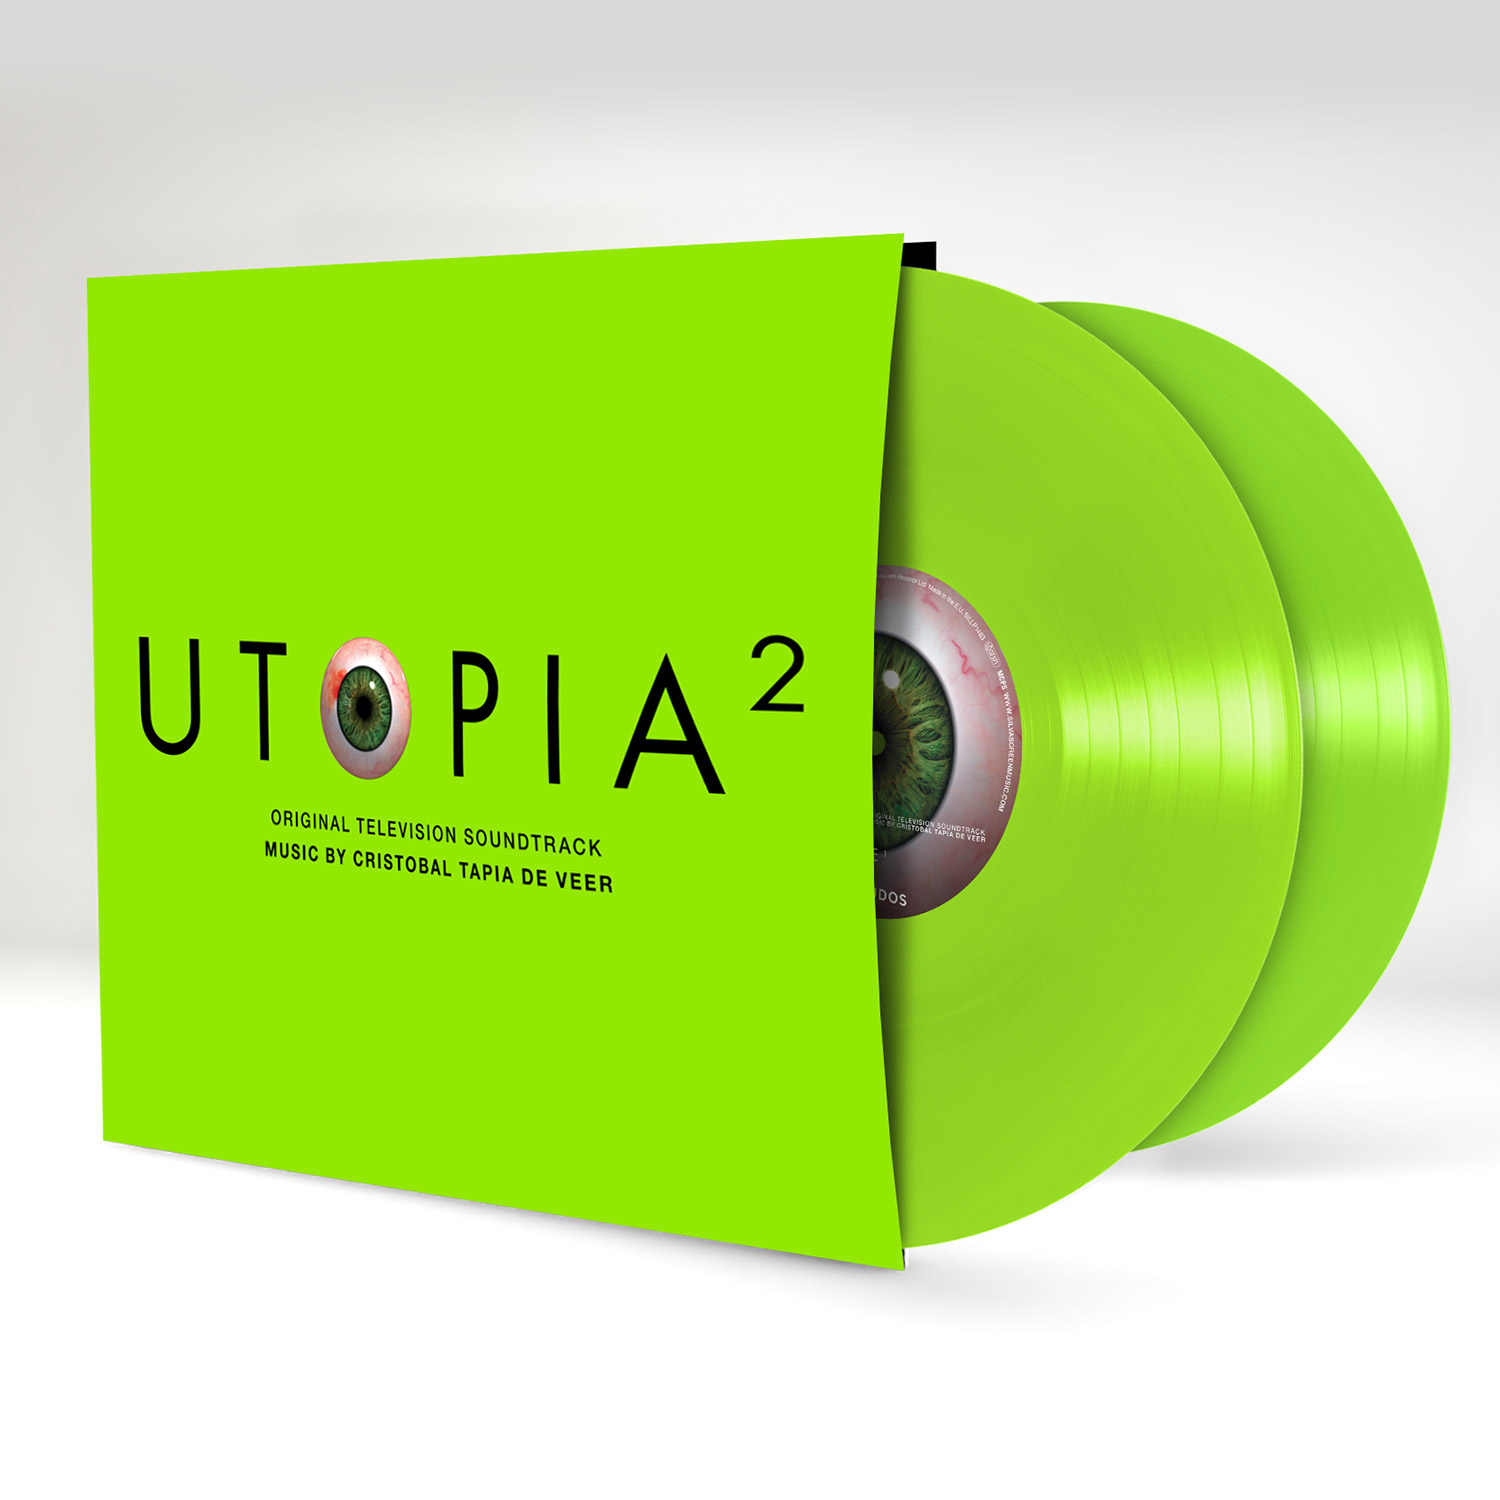 Buy Online Rare Sleeve - Utopia 2 Original Soundtrack Grass Green